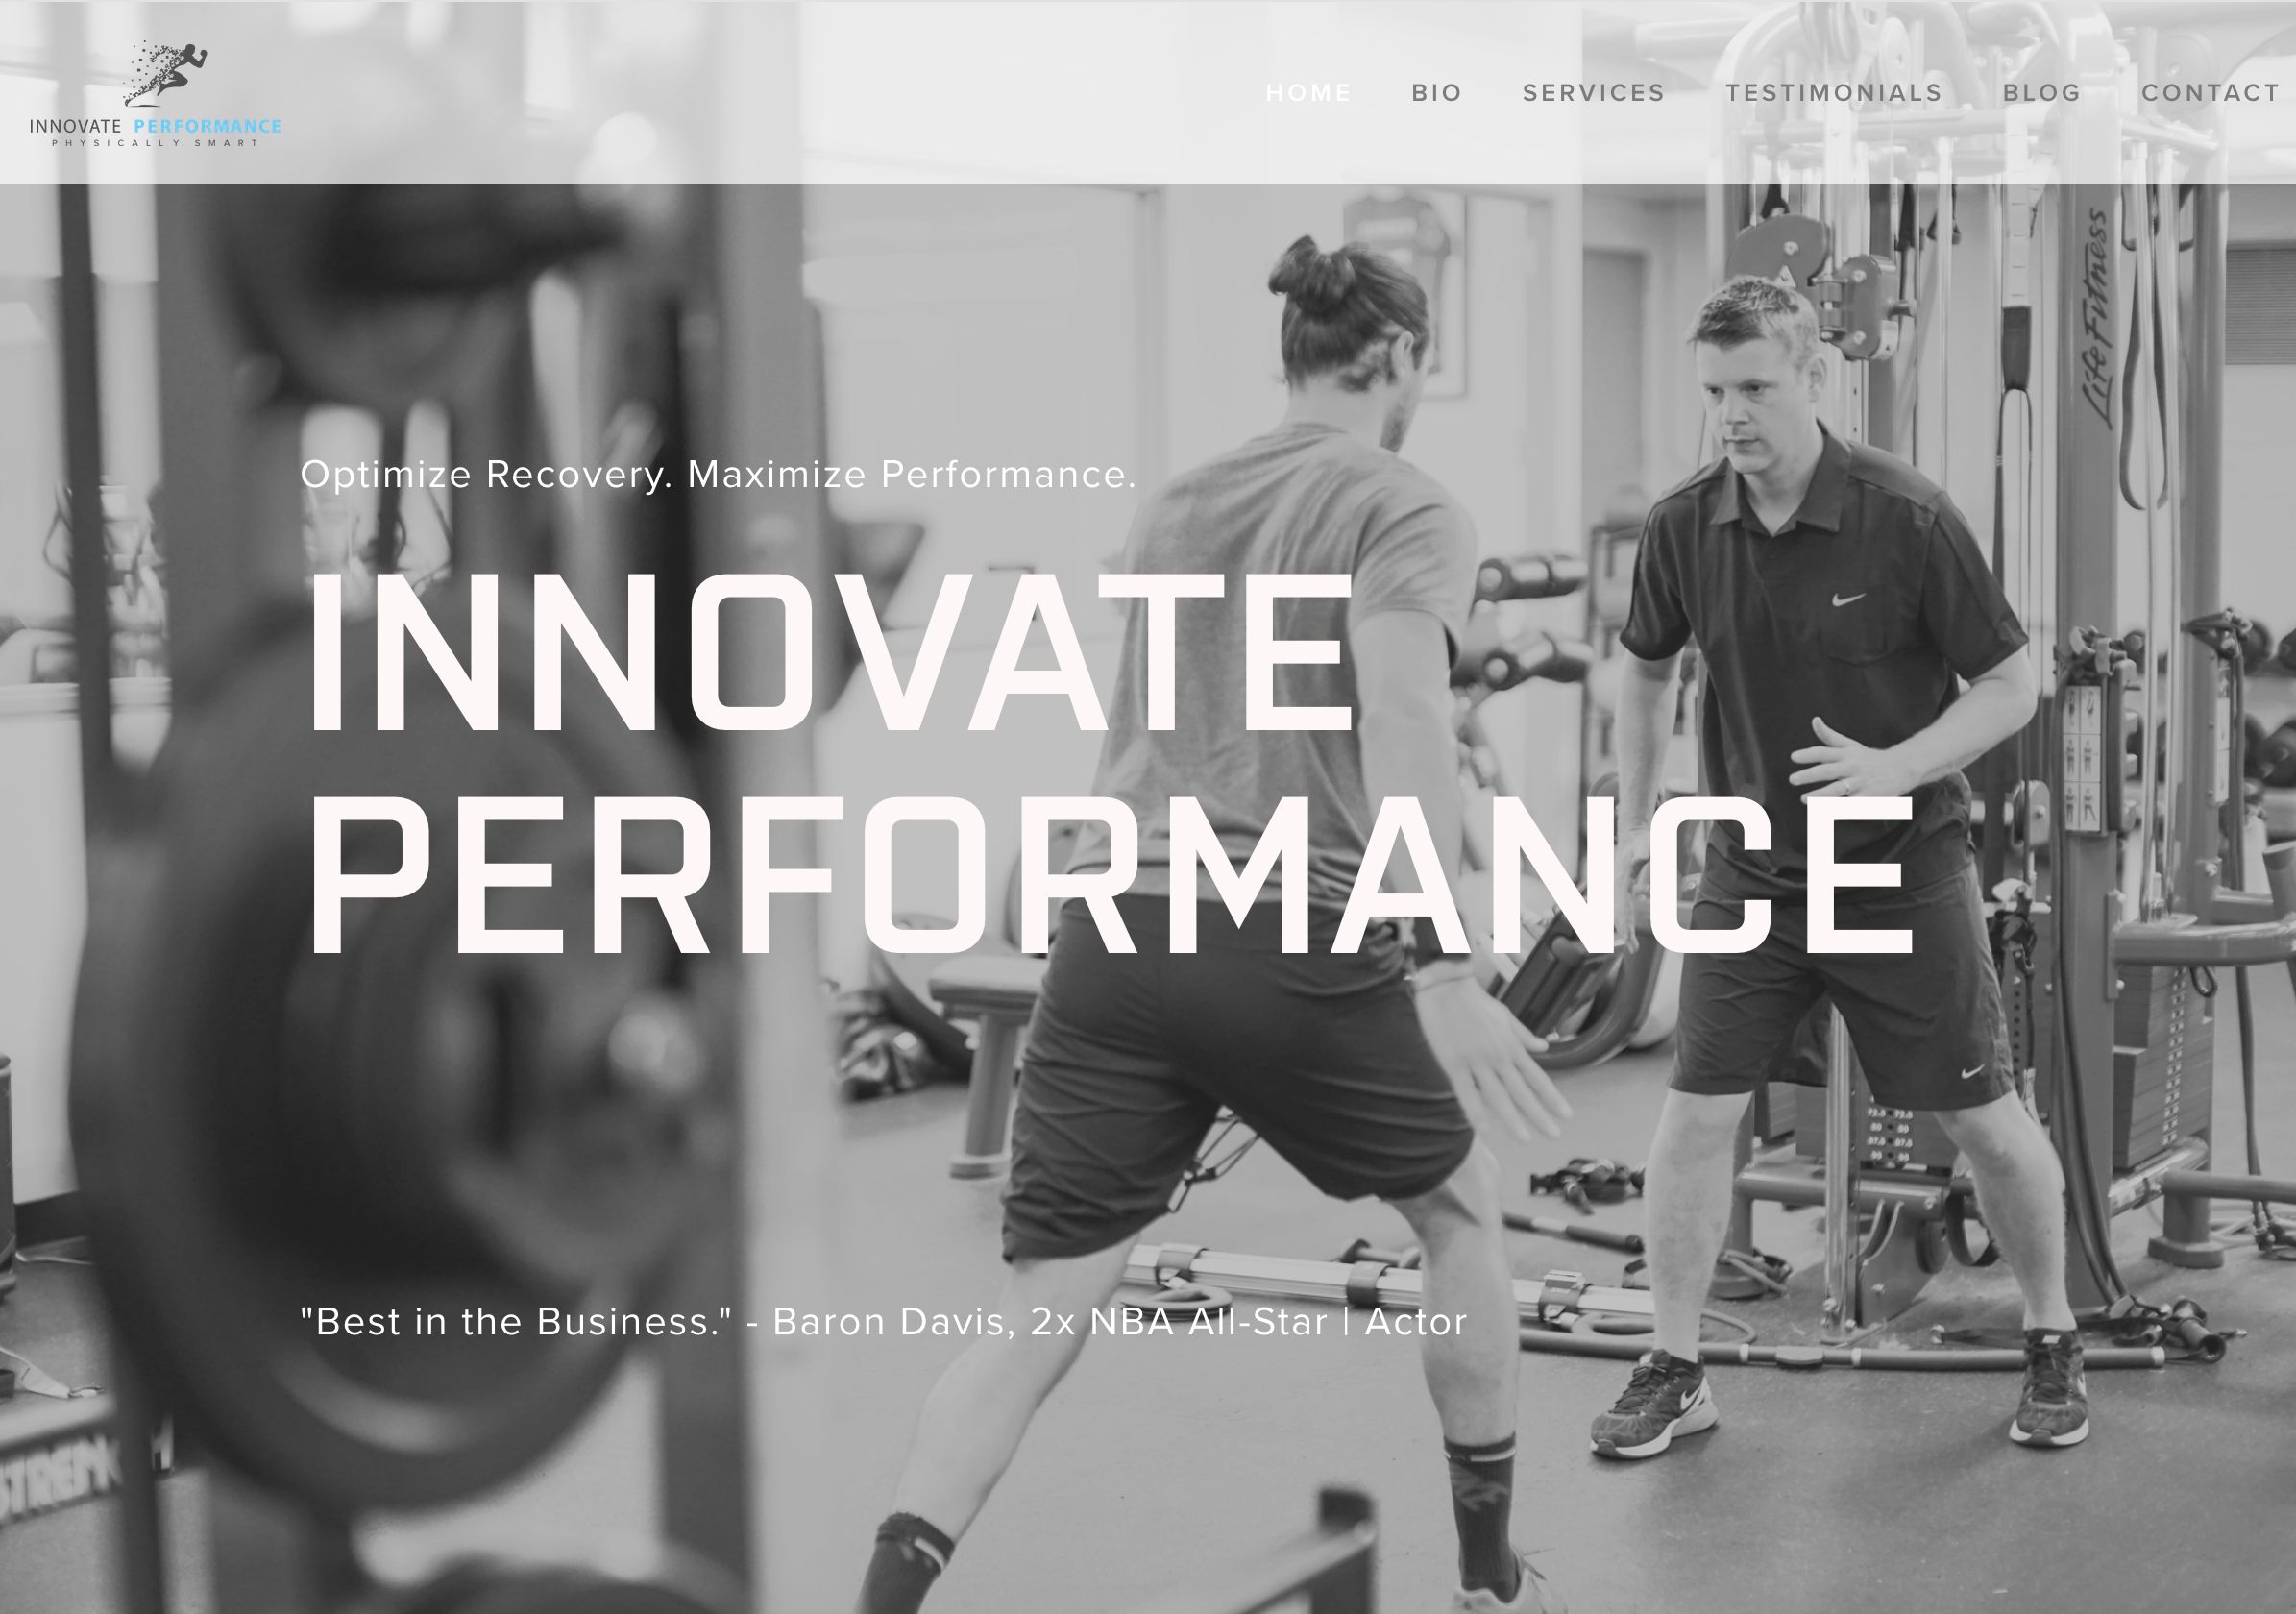 Elite Concierge Physiotherapy and Performance Training - www.innovateperformance.com